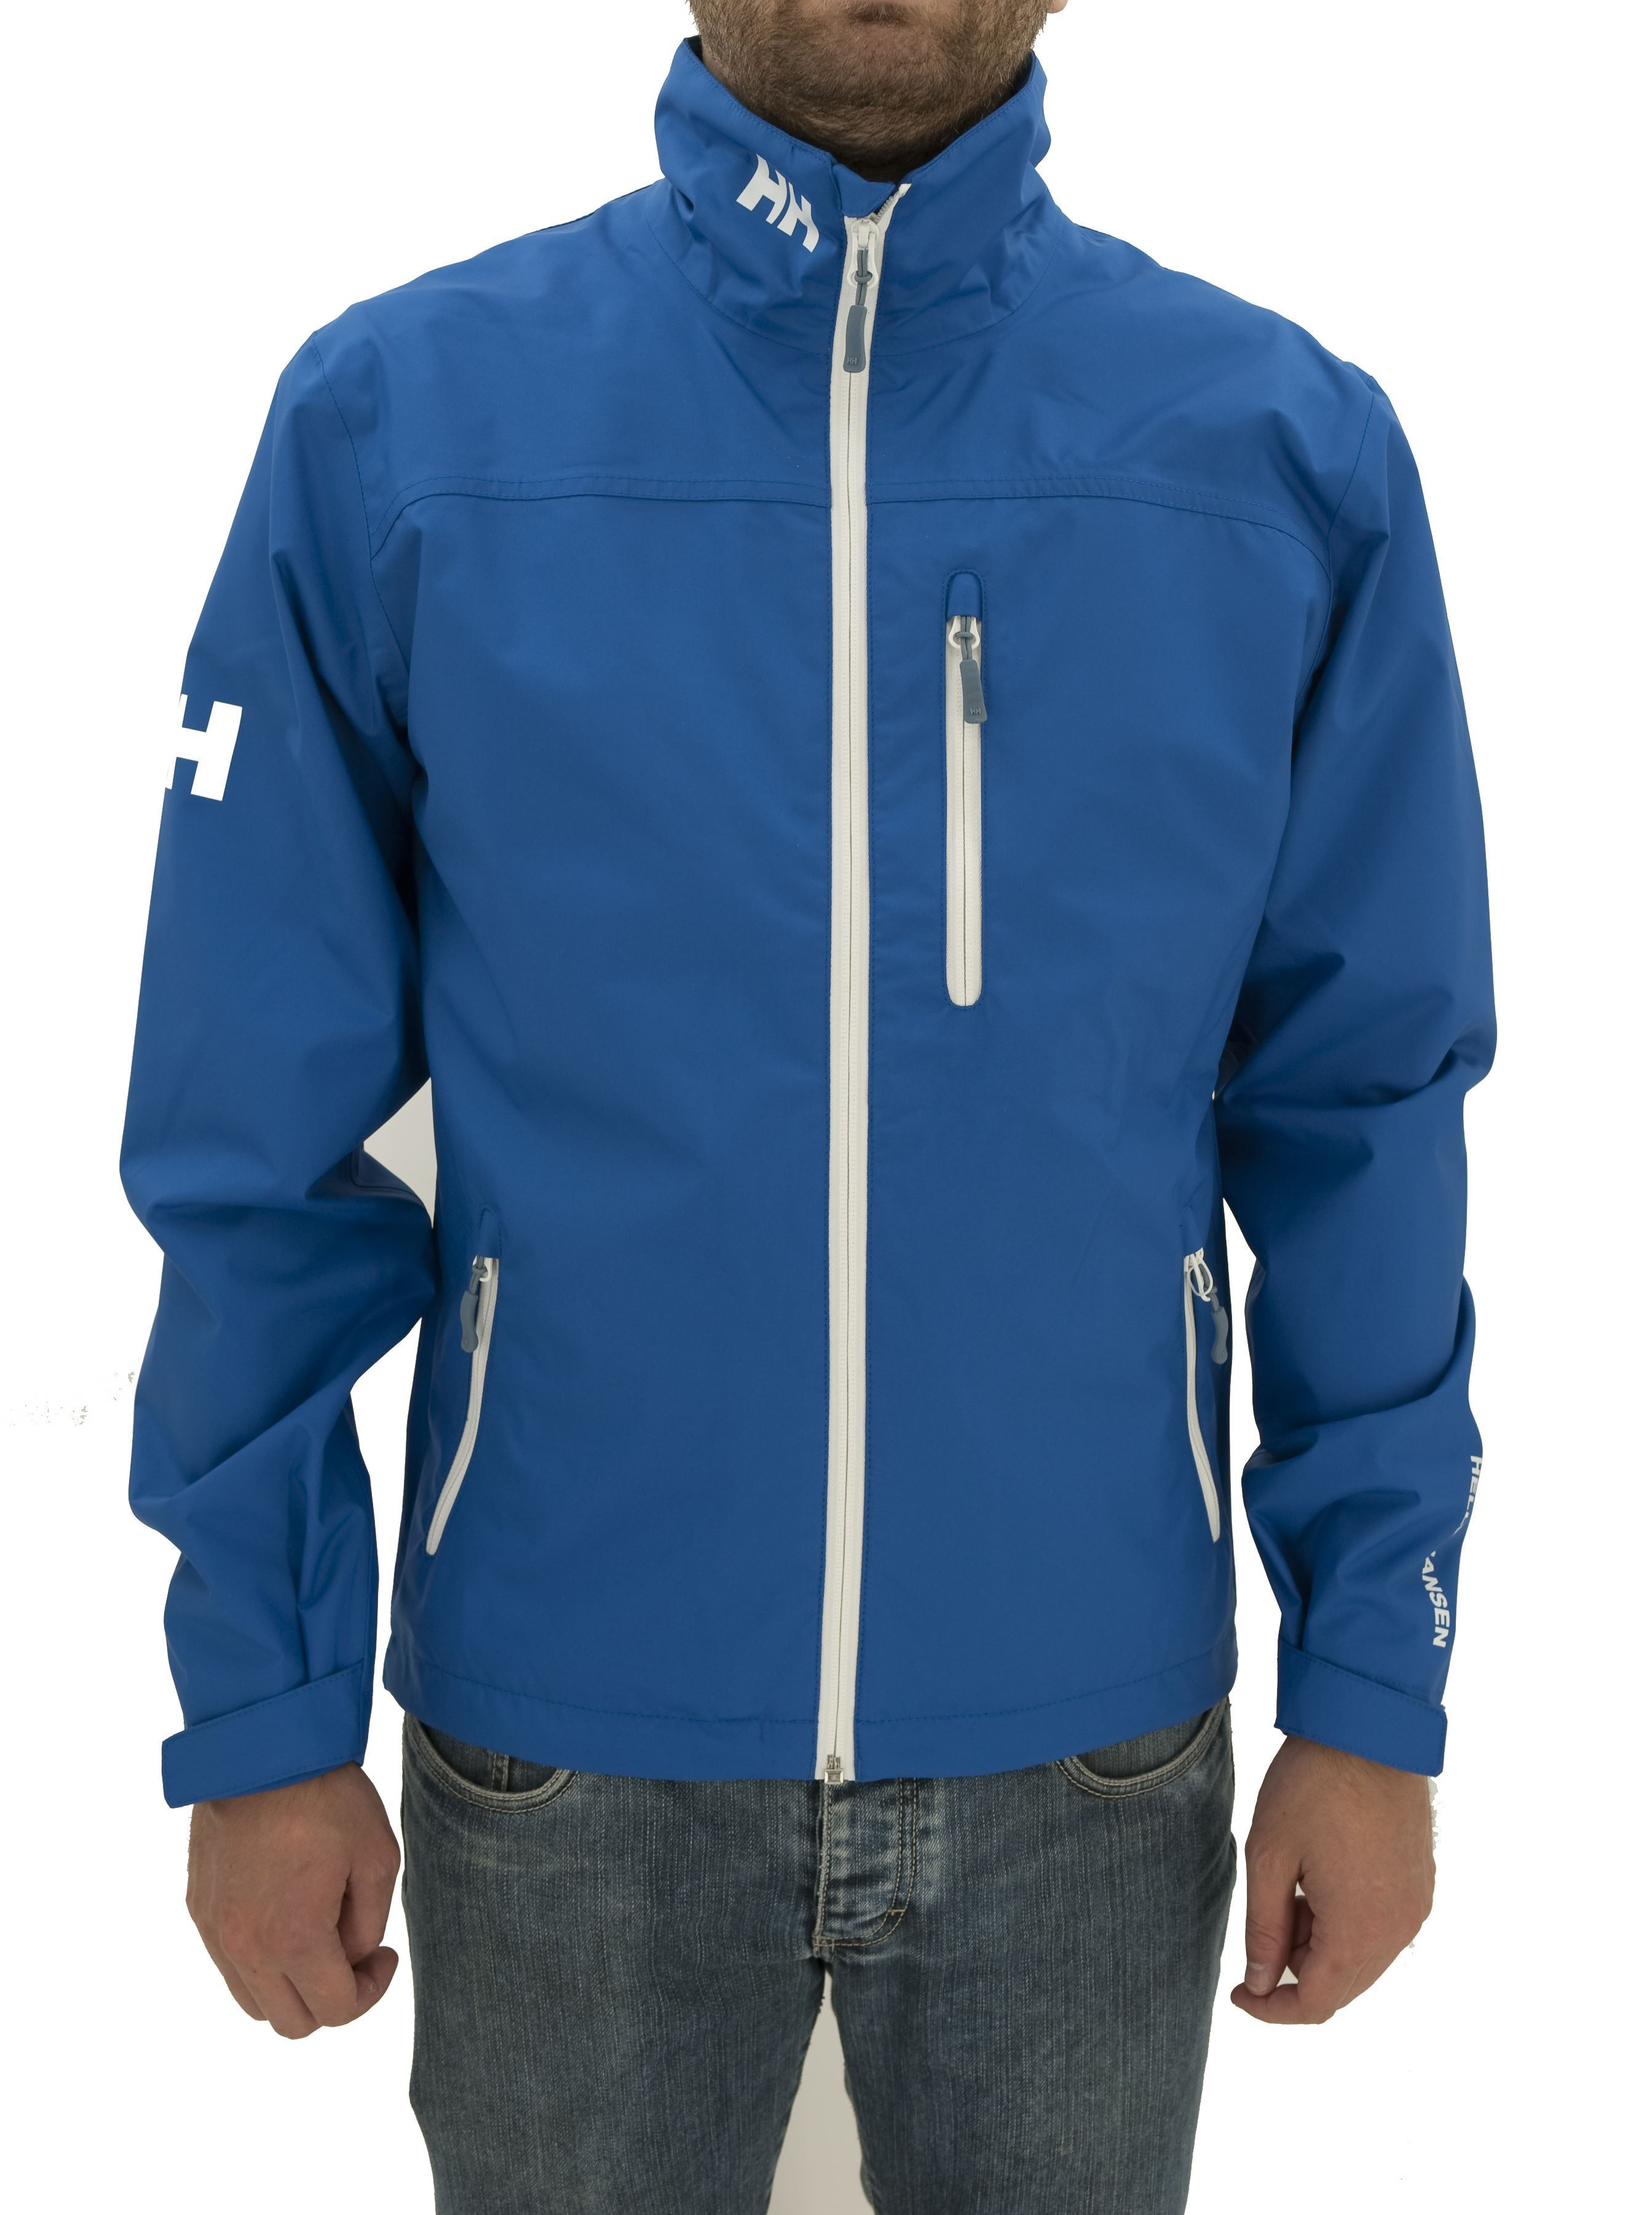 Picture of Crew jacket